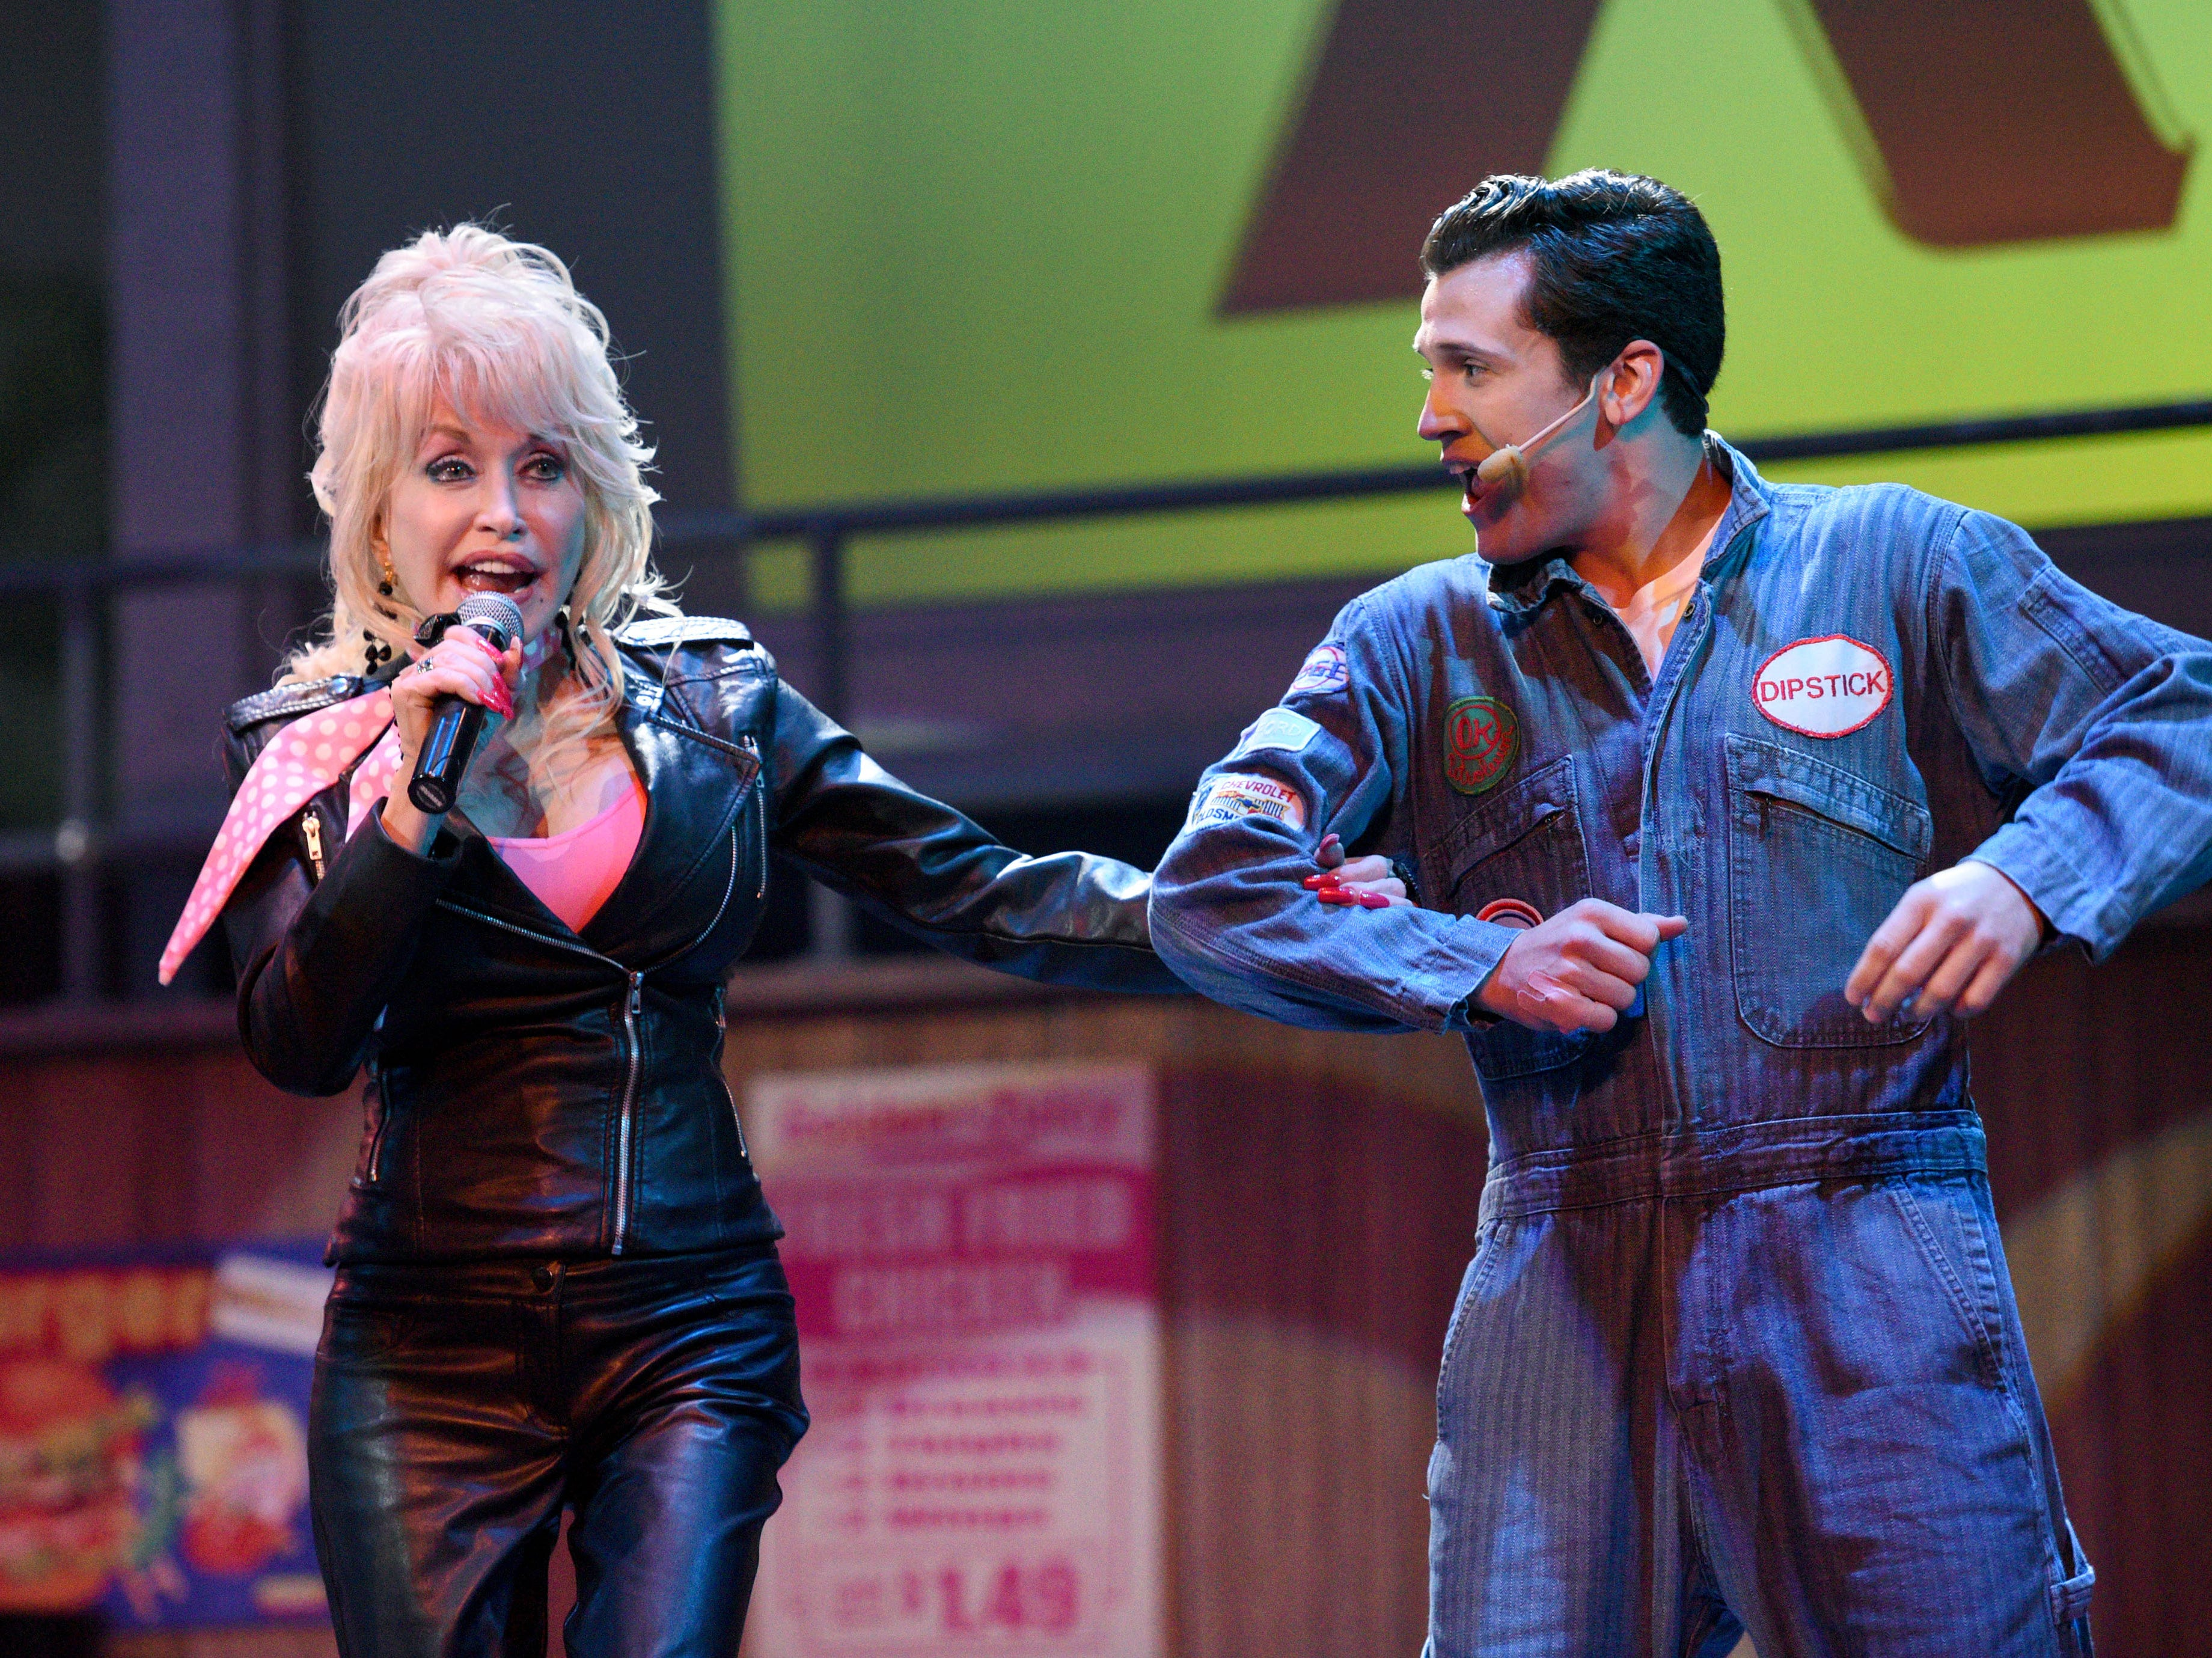 Dolly Parton on stage with Quade Sewell, a member of the Dreamland Drive-in cast, during the announcement of a $22 million wood coaster that will mark the largest attraction investment in the park's history  Friday, Aug. 7, 2015. The Lightning Rod is the world's fastest, first launching wood coater and construction is expect to be ready in 2016.